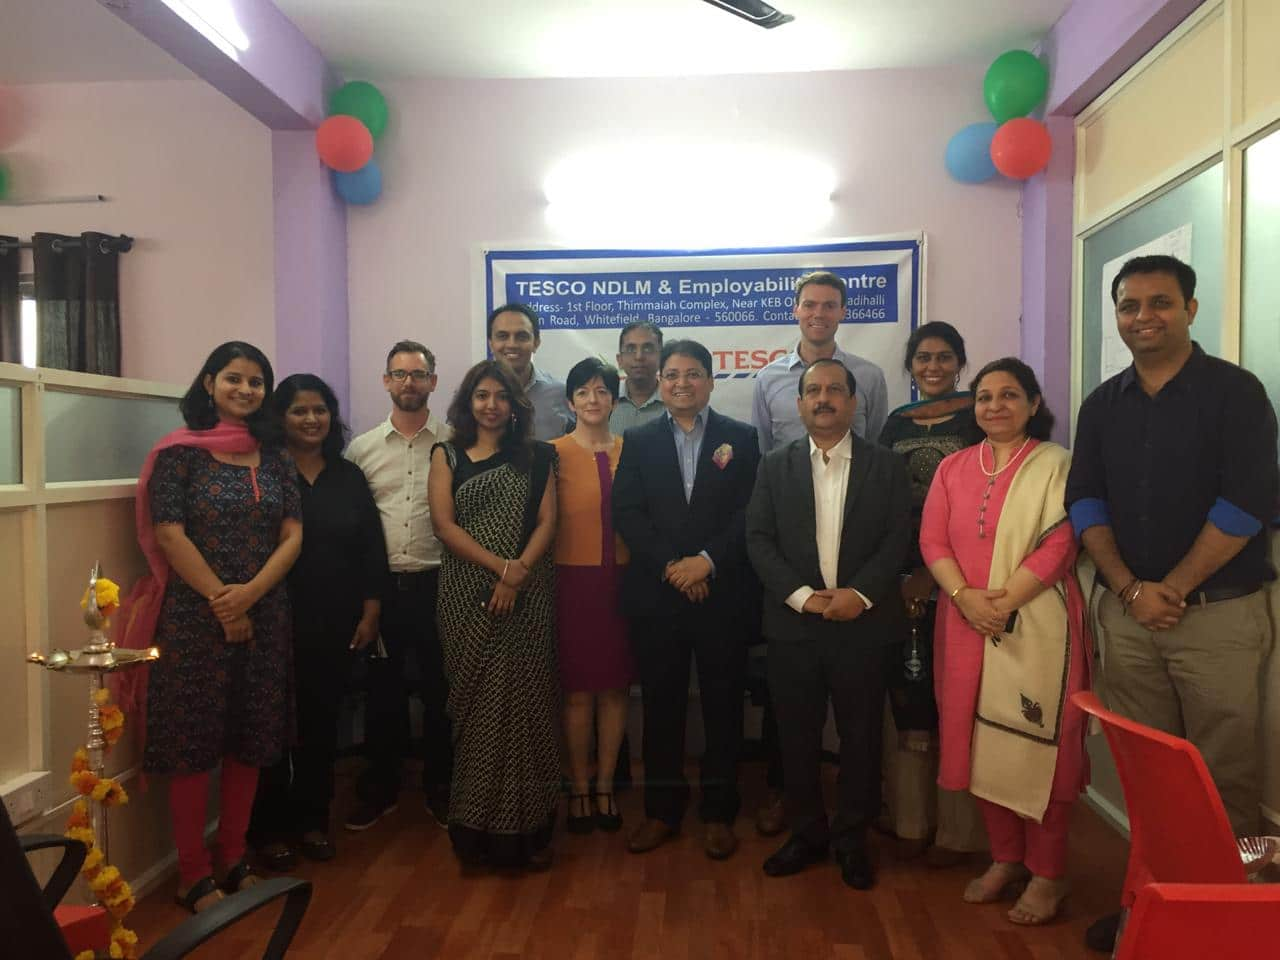 Tesco Bengaluru inaugurates first Community Career Development Centre in partnership with NASSCOM Foundation